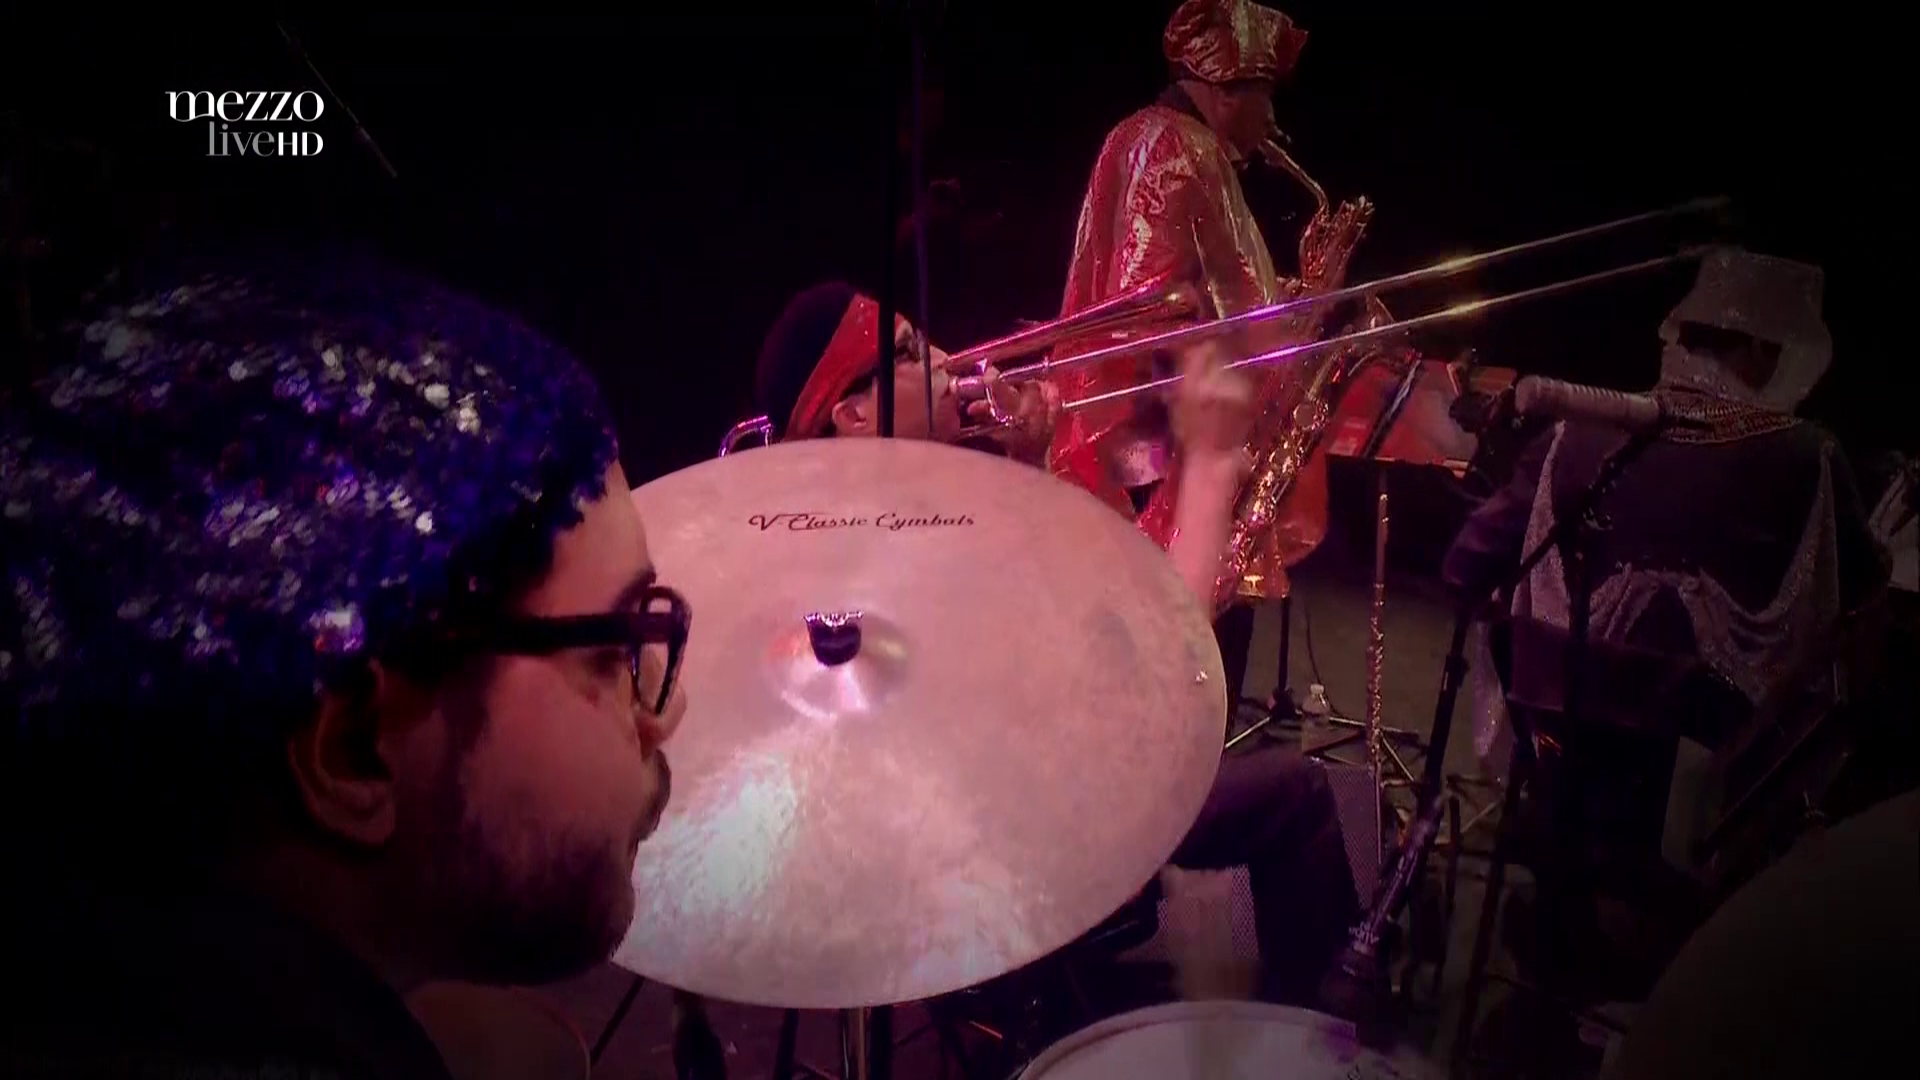 2015 Sun Ra - On Stage With Ra At Banlieues Bleues [HDTV 1080i] 2